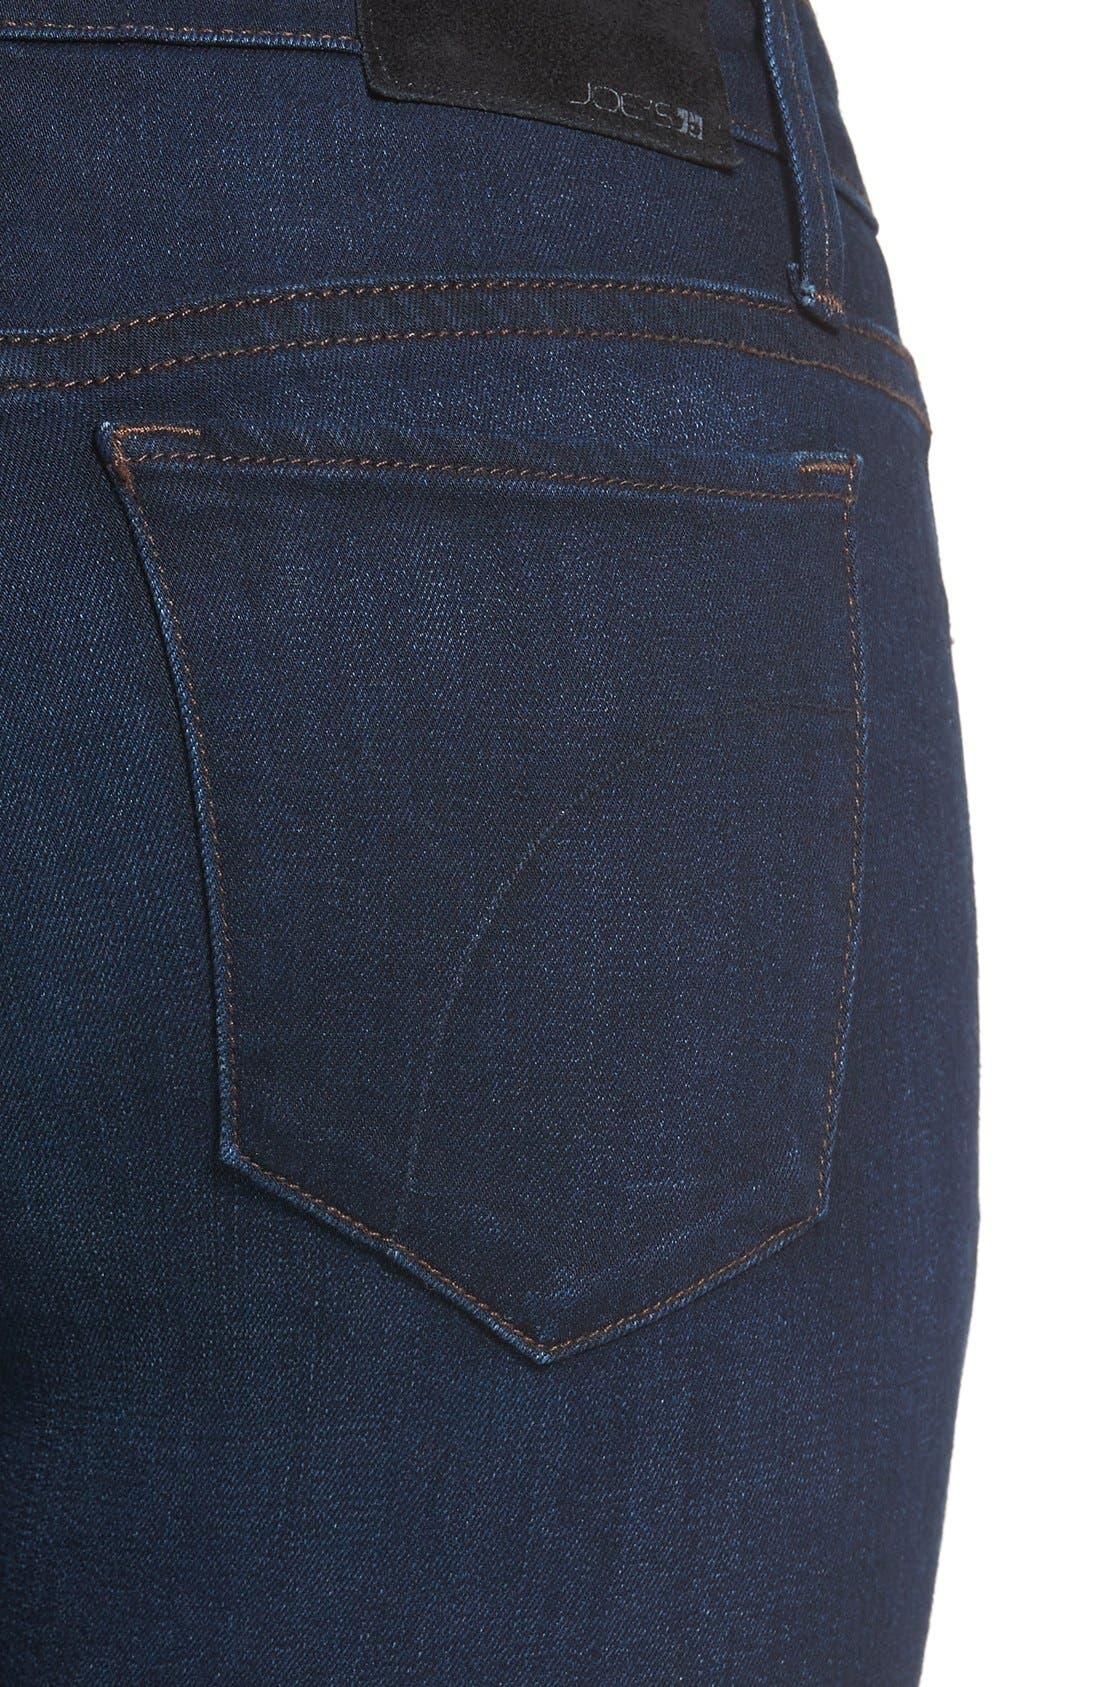 'Icon' Ankle Skinny Jeans,                             Alternate thumbnail 3, color,                             SELMA